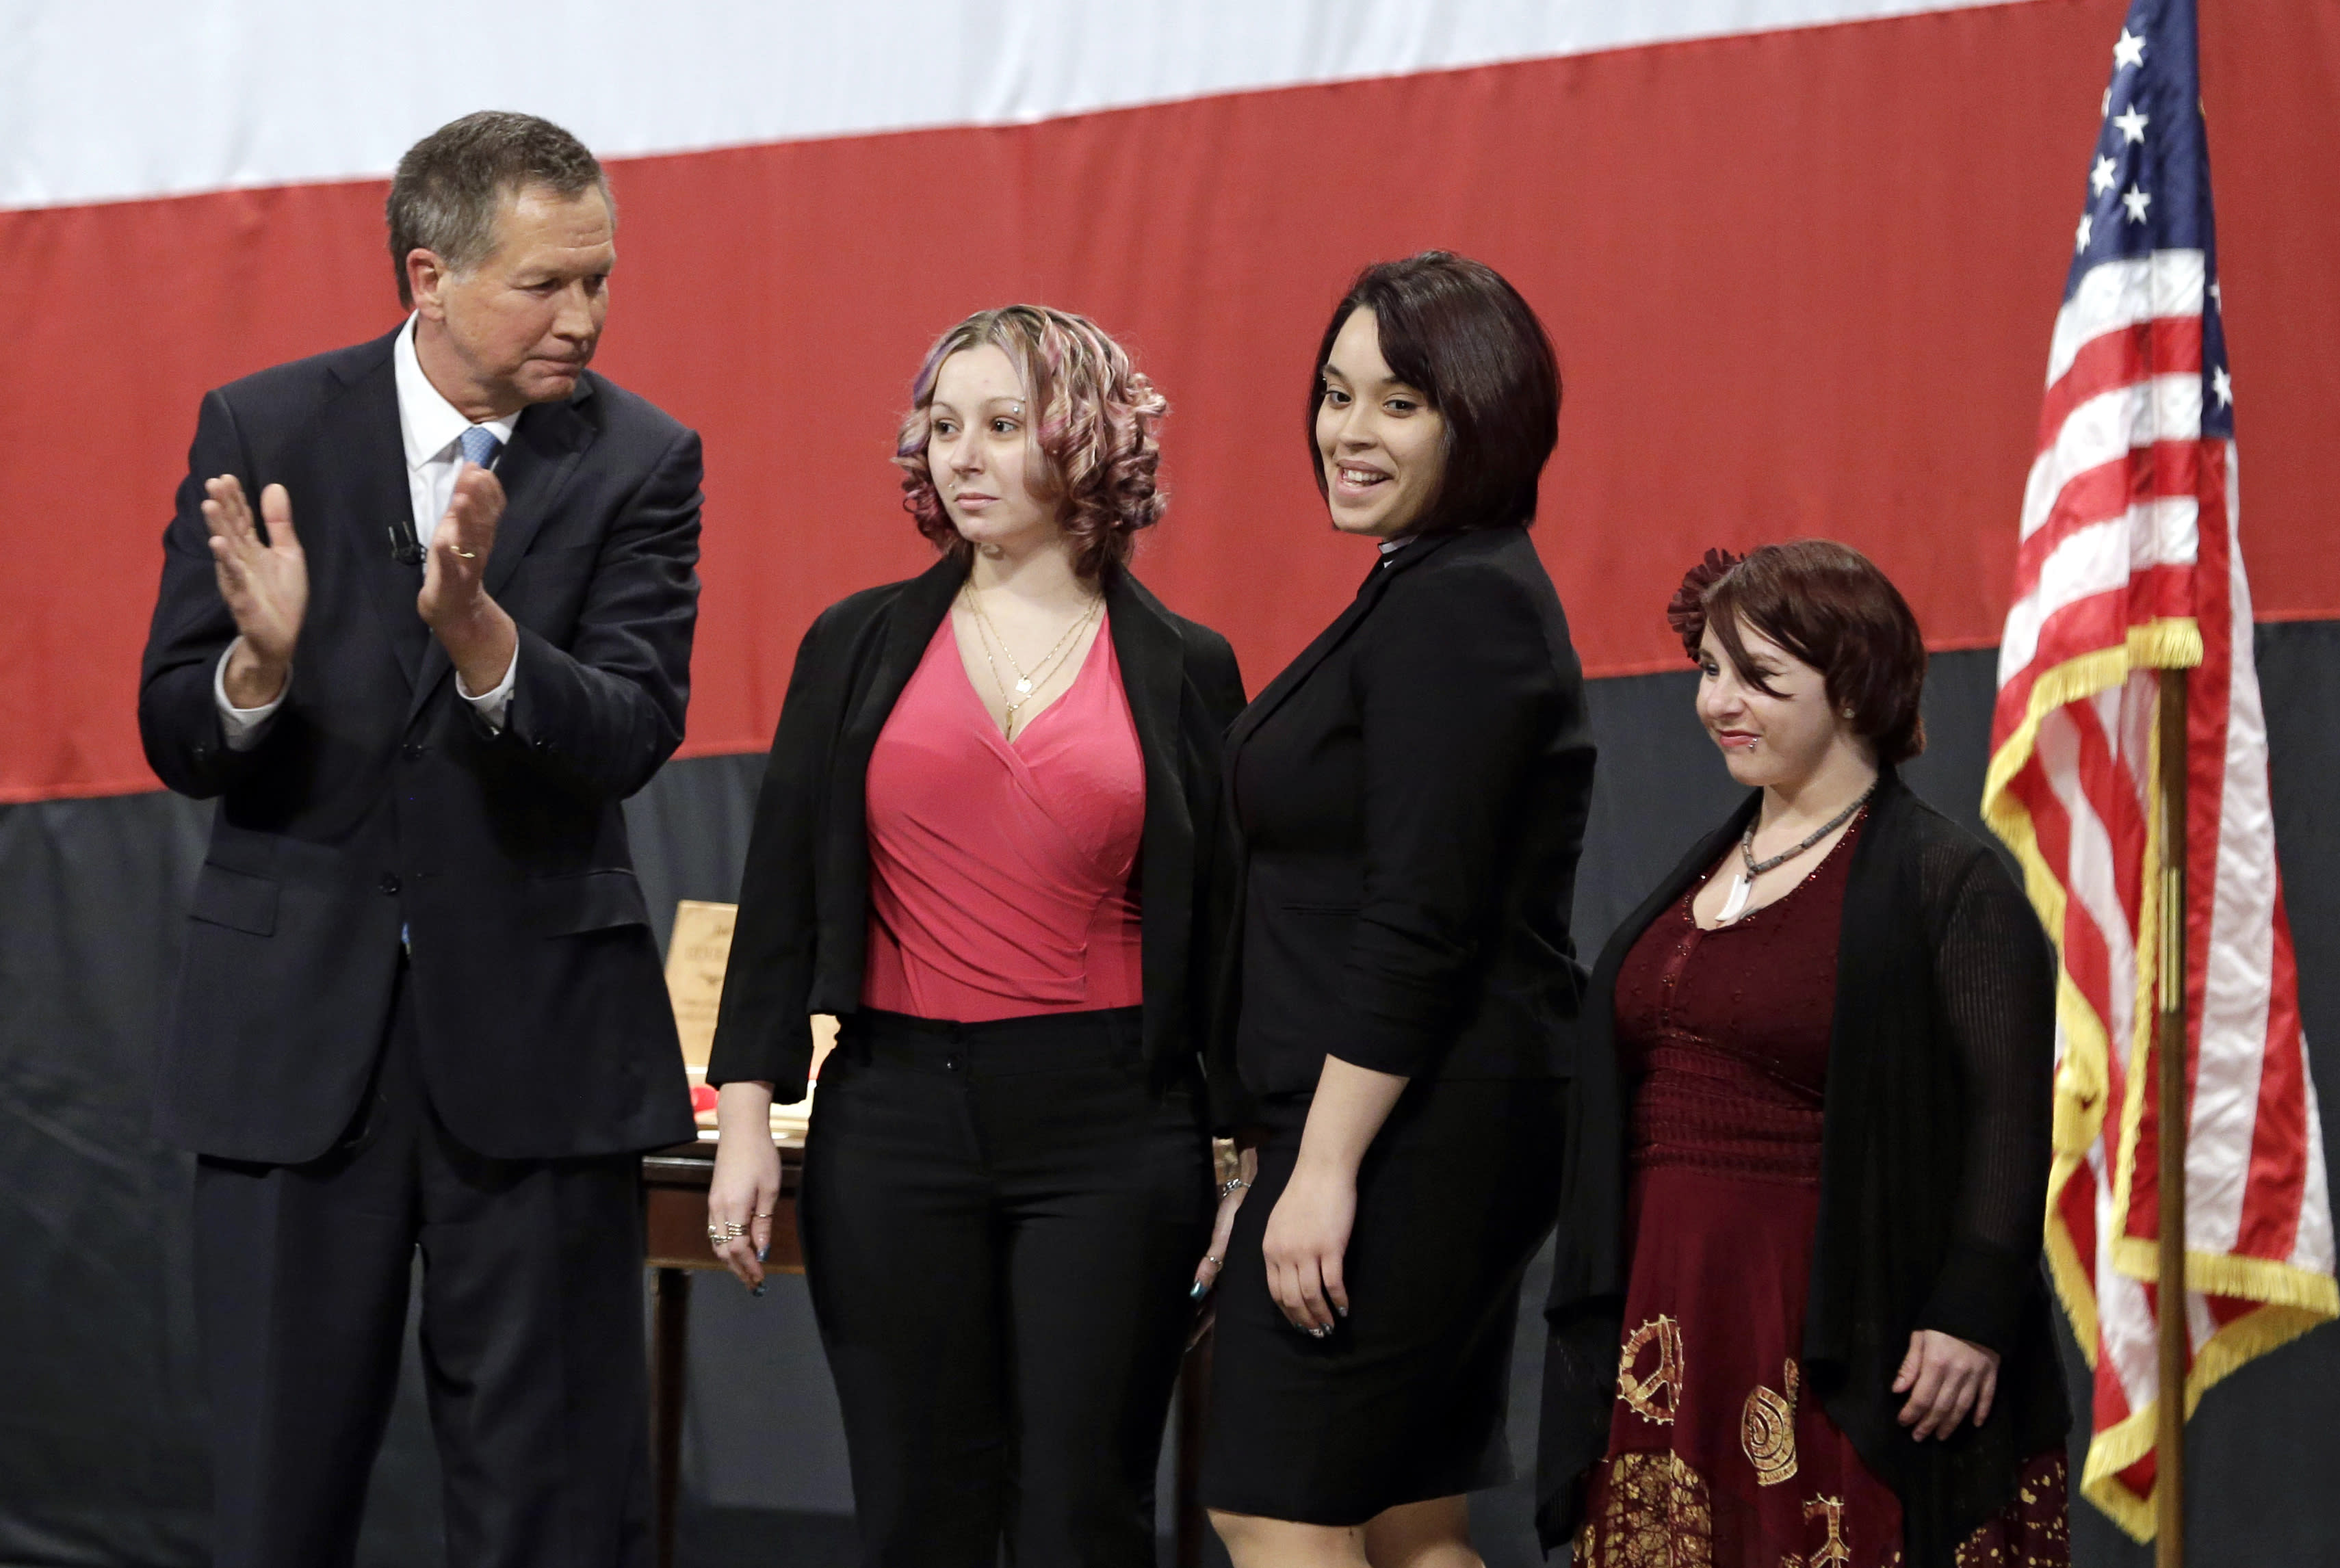 Ohio Gov. John Kasich, from left, introduces Amanda Berry, Gina DeJesus and Michelle Knight during his State of the State address at the Performing Arts Center Monday, Feb. 24, 2014, in Medina, Ohio. The three women, who survived a decades-long captivity in Cleveland before being rescued in May when Berry pushed her way through a door to freedom, received the Governor's Courage Award. (AP Photo/Tony Dejak)